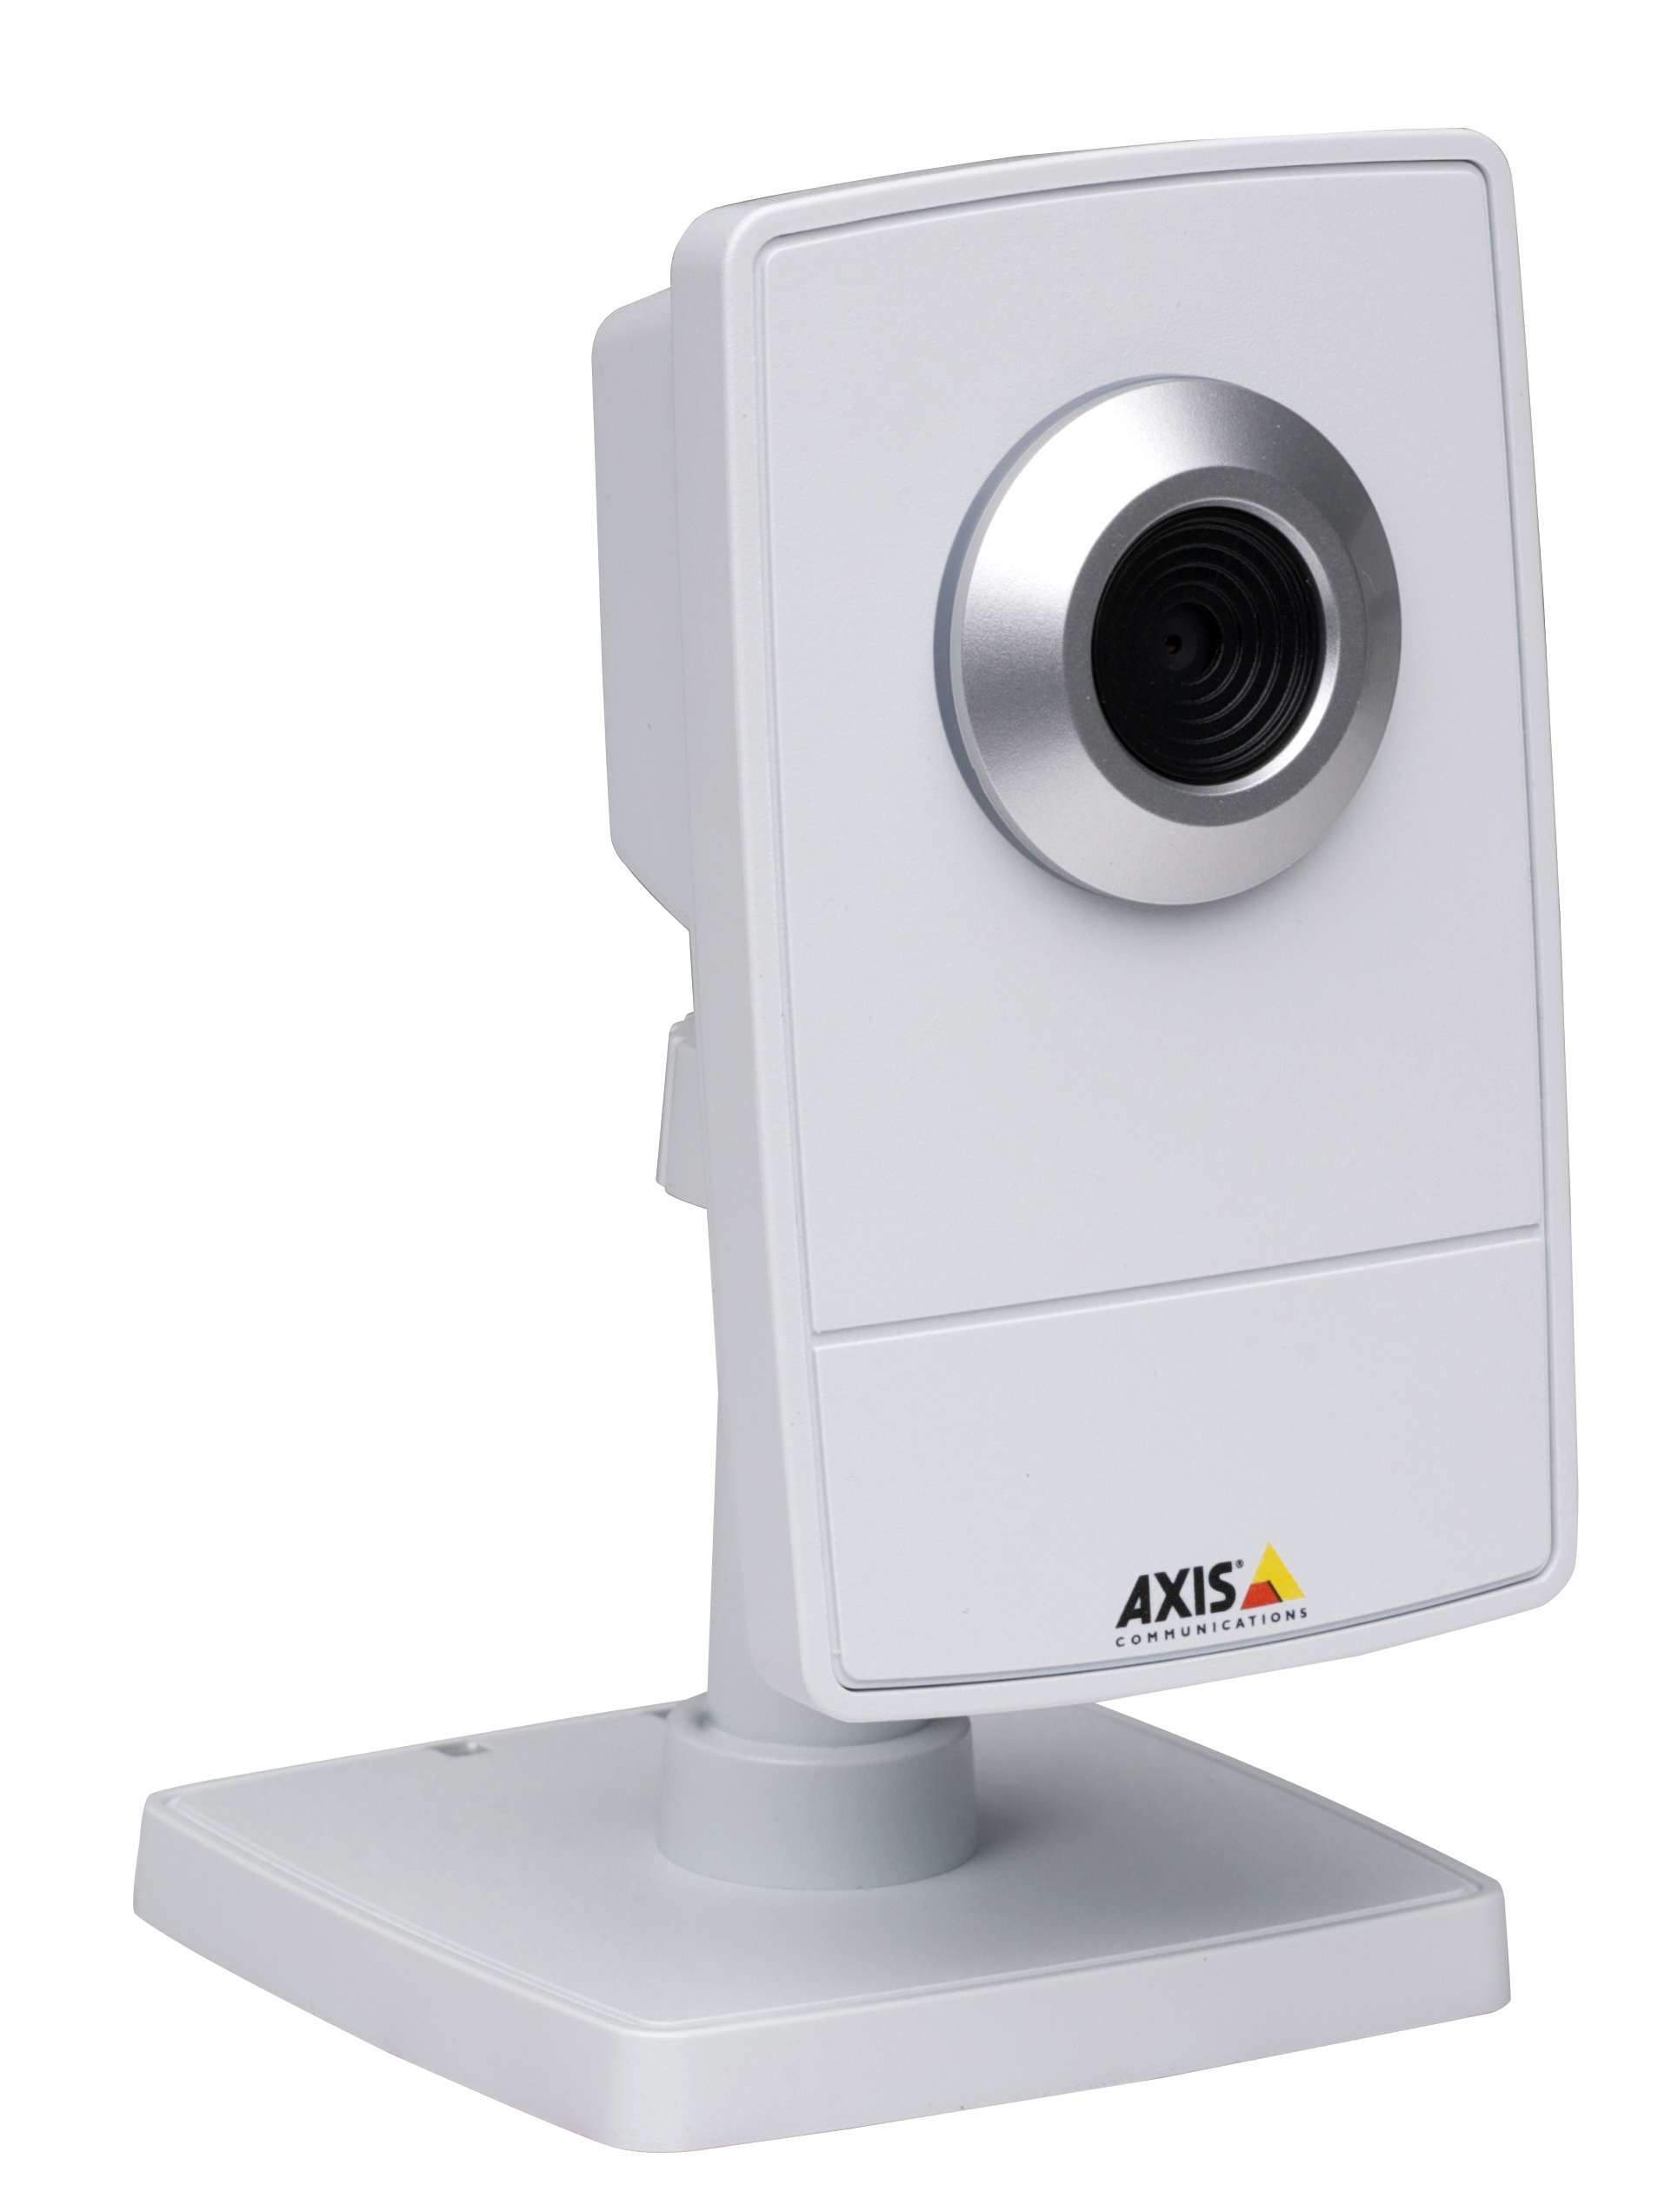 M1011-W Indoor network camera. Fixed lens.